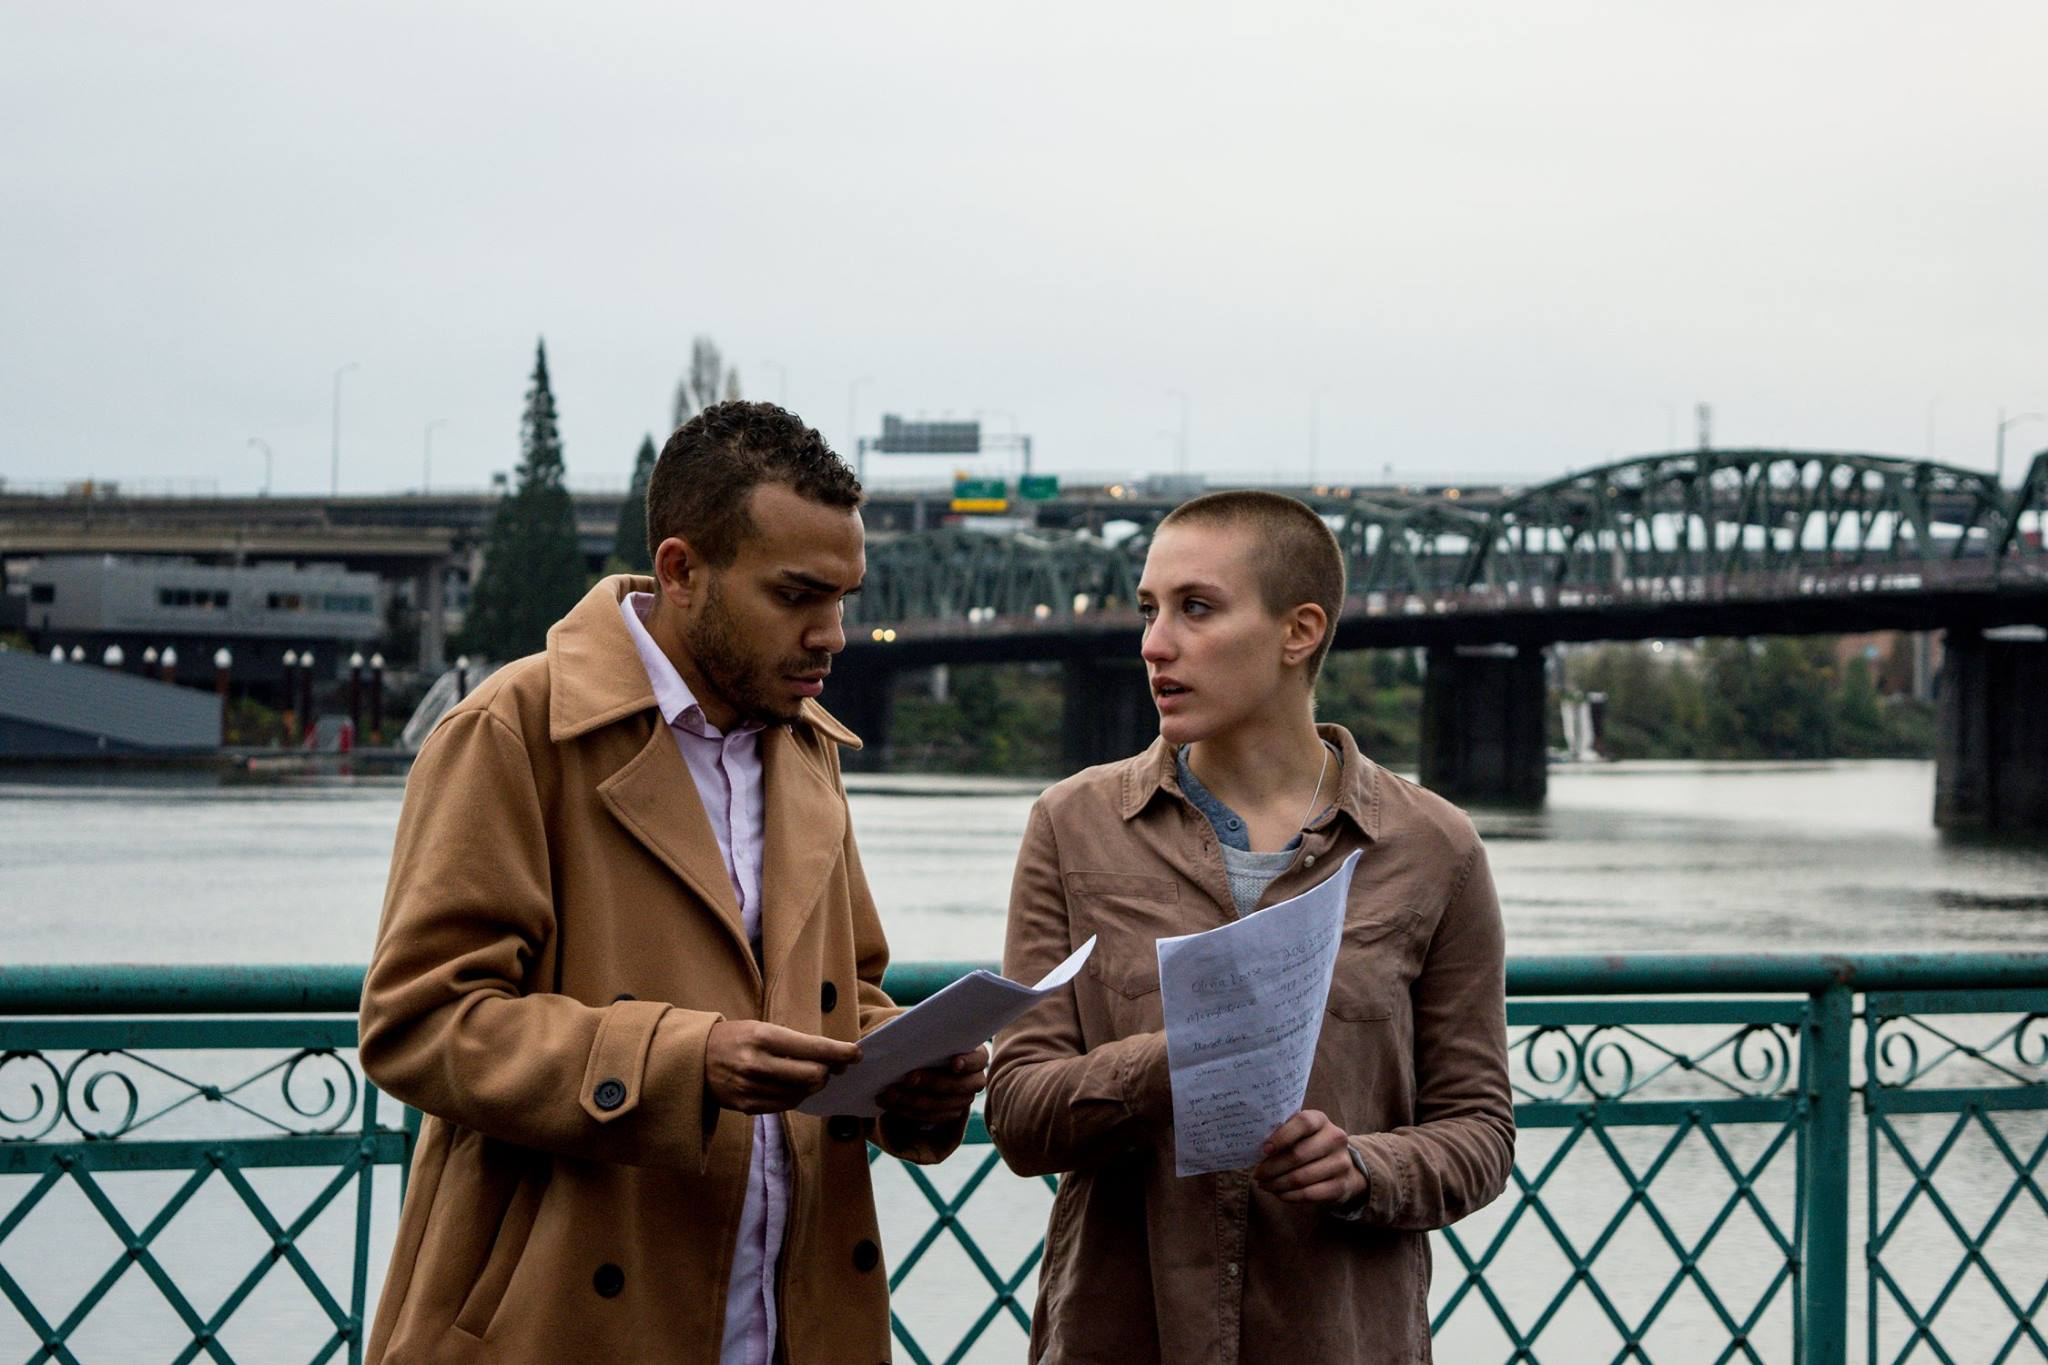 Photo of McKelvey and Stevens sharing notes and speaking at a protest in Portland, Oregon courtesy of Benjamin Kerensa.